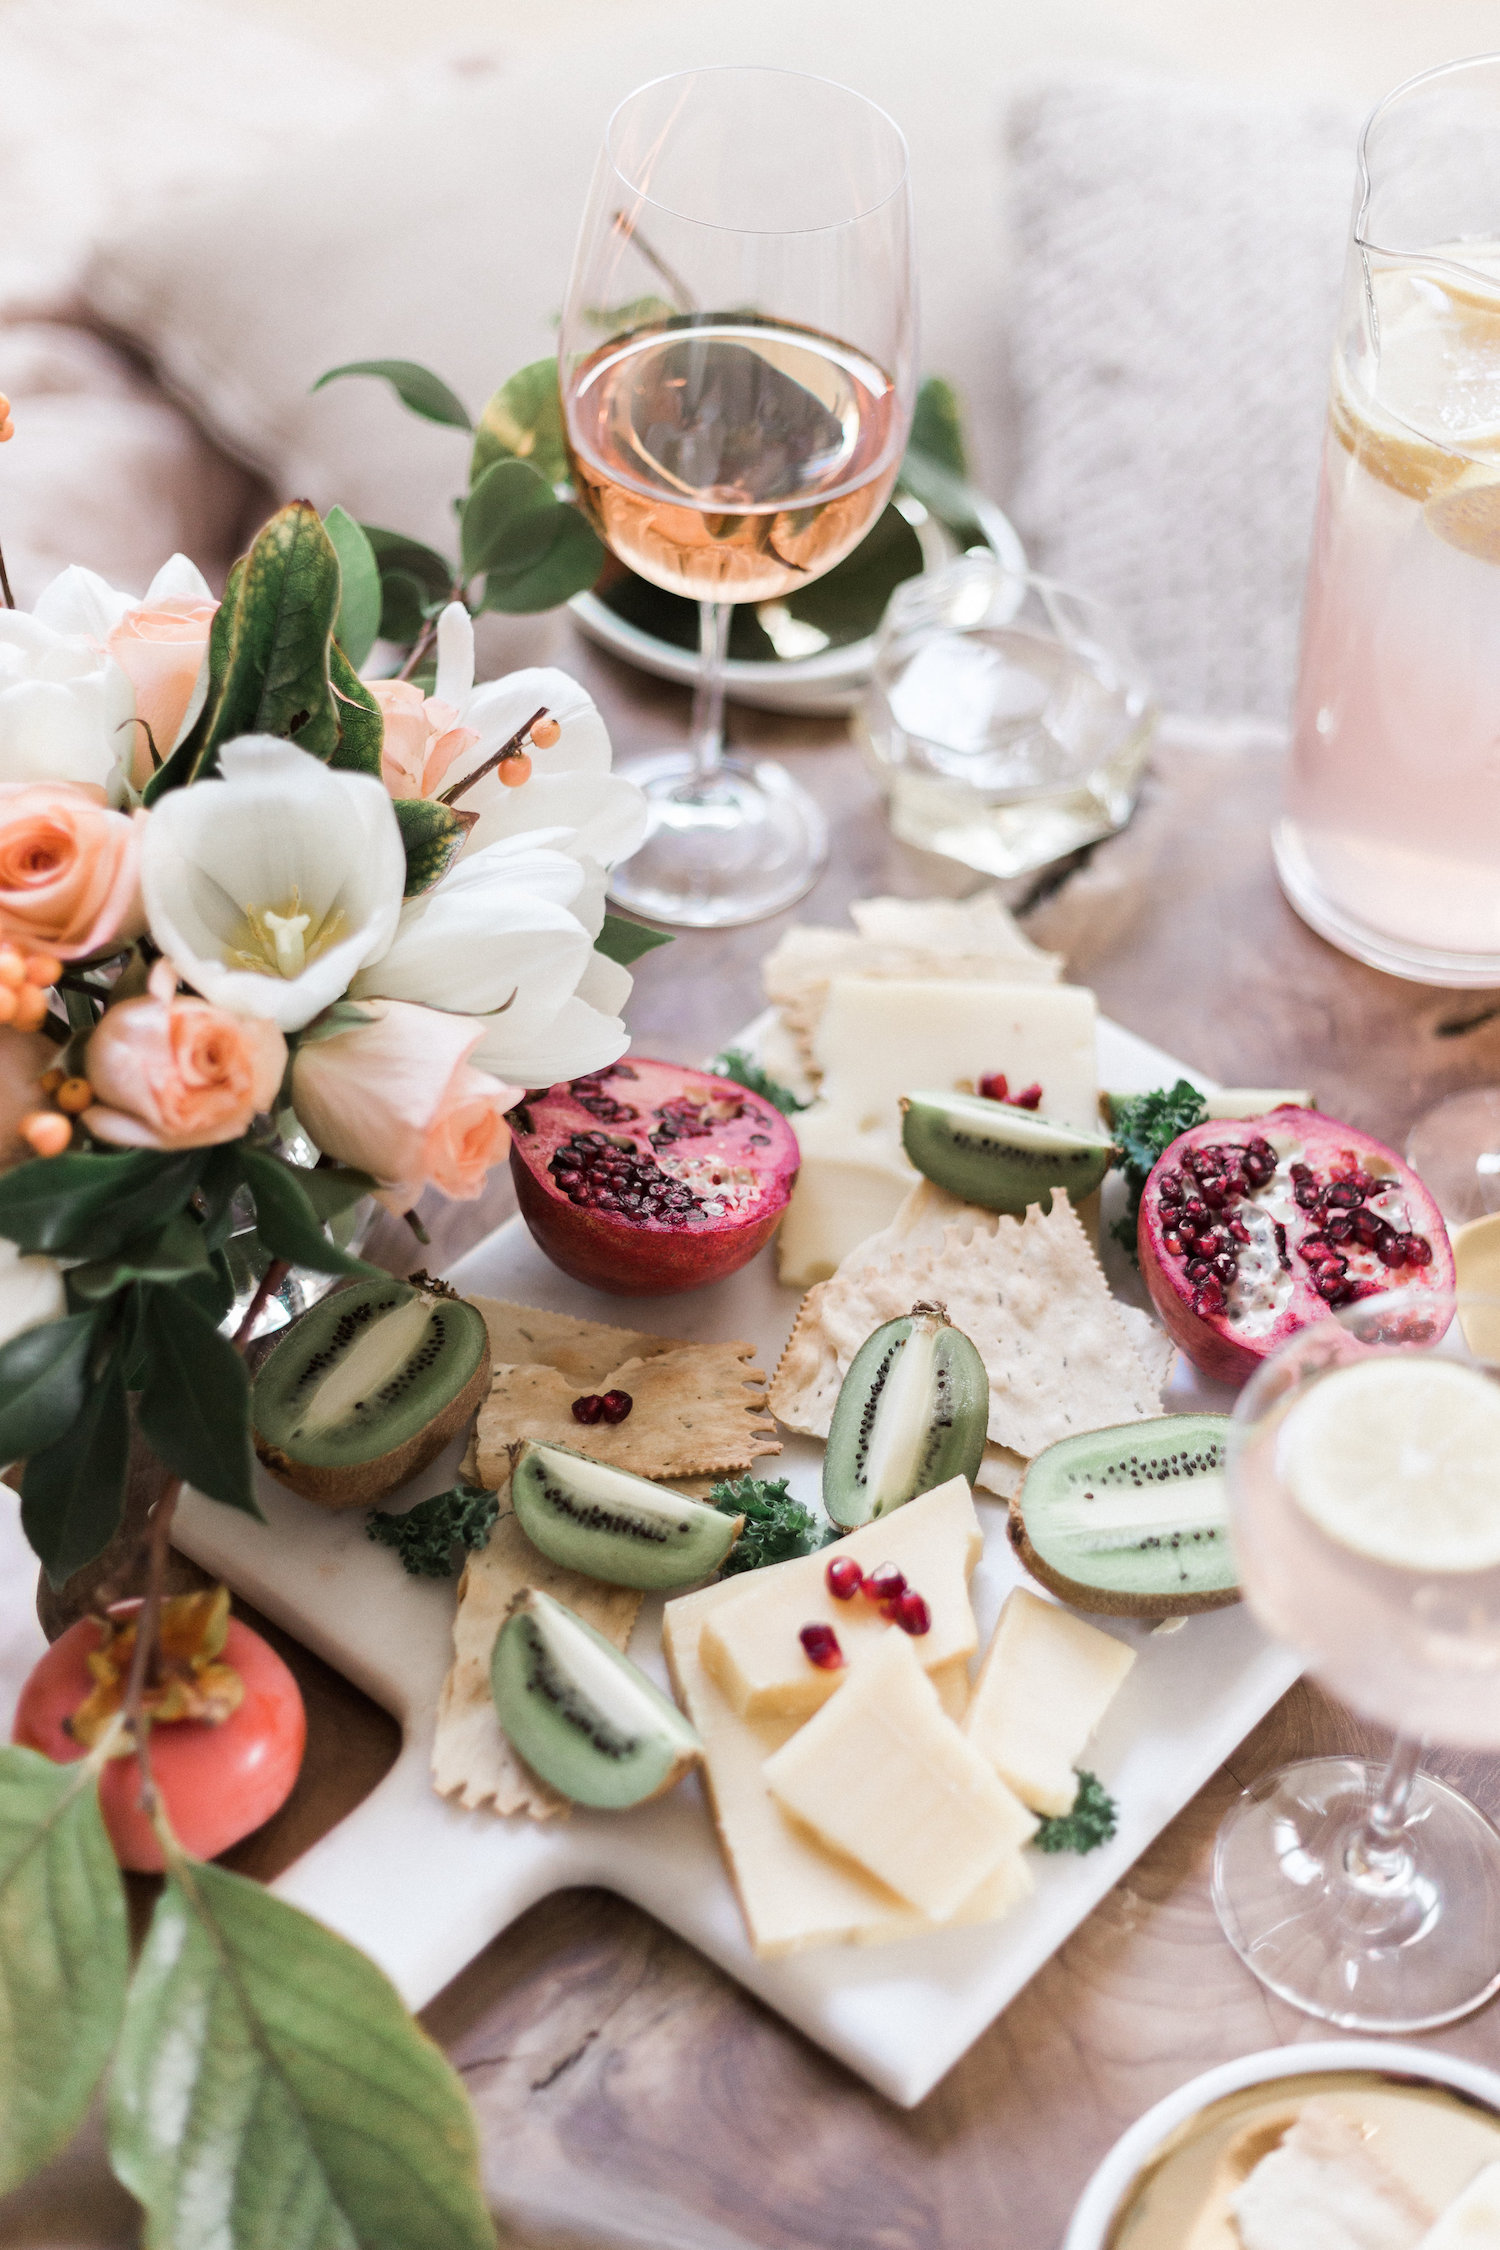 Get togethers at home with an easy spread and flowers you can grab at the grocery store | A Fabulous Fete